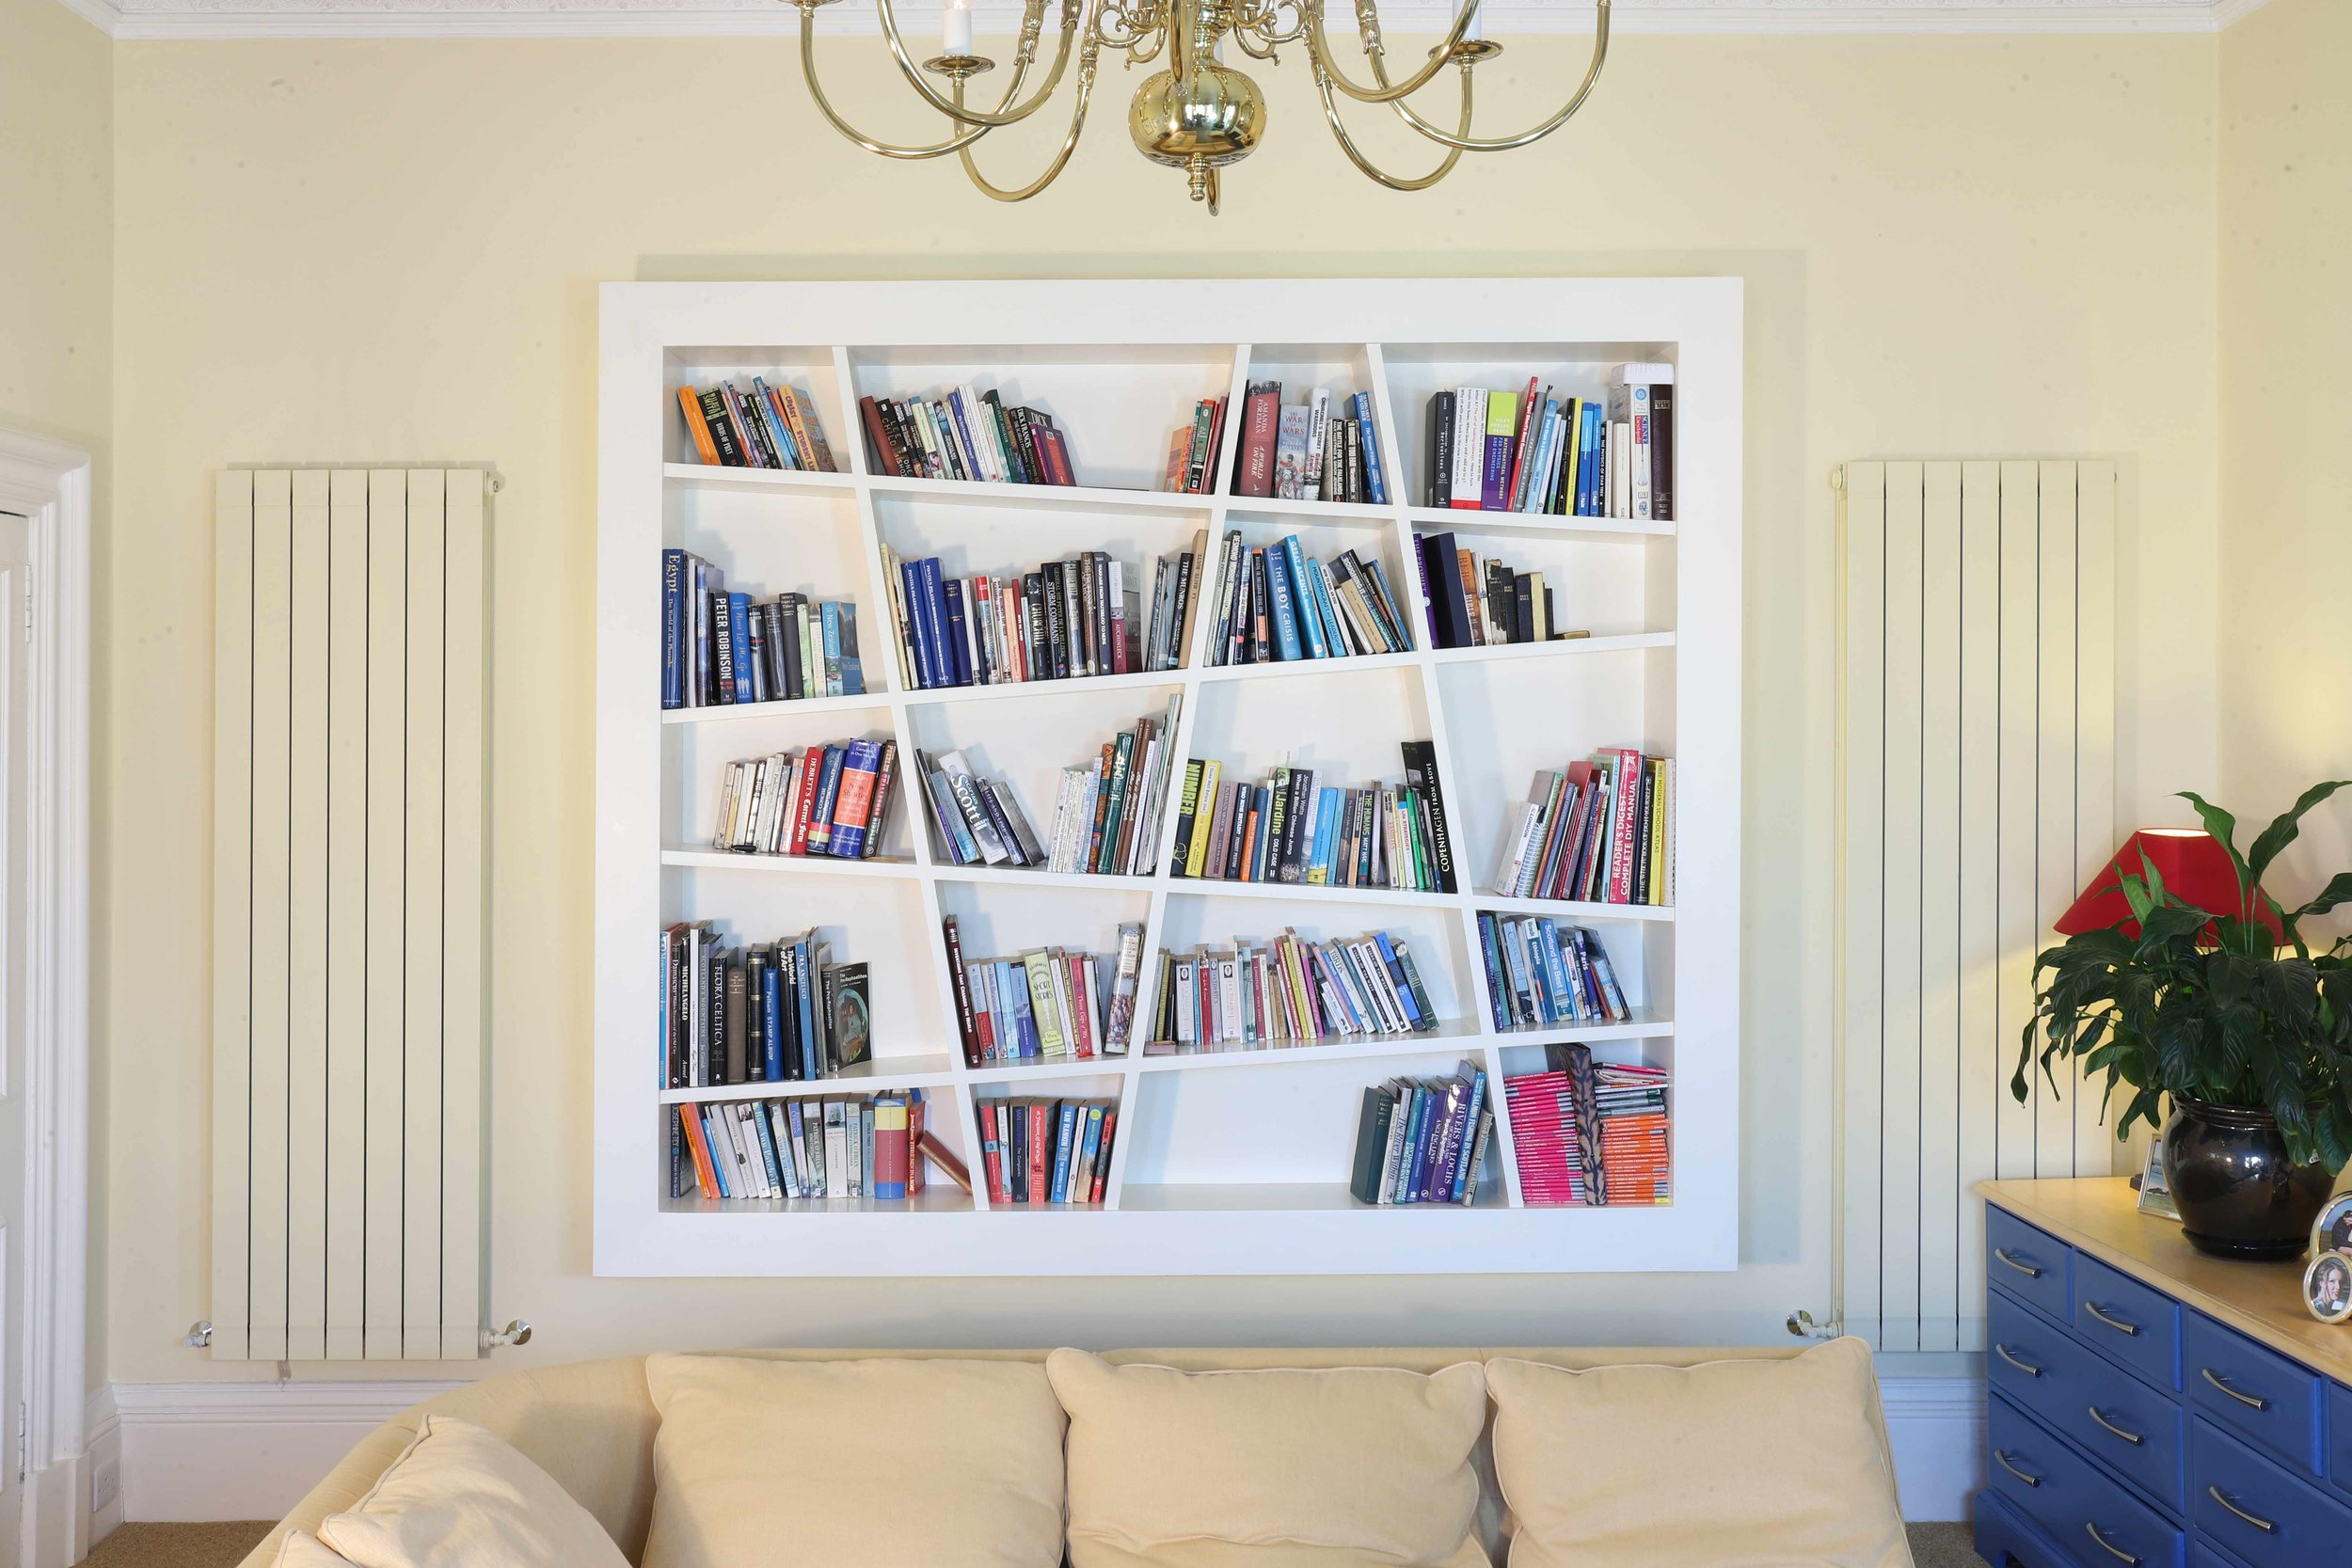 70's style wall mounted bookcase with LED surround lighting for a period house in the Grange.